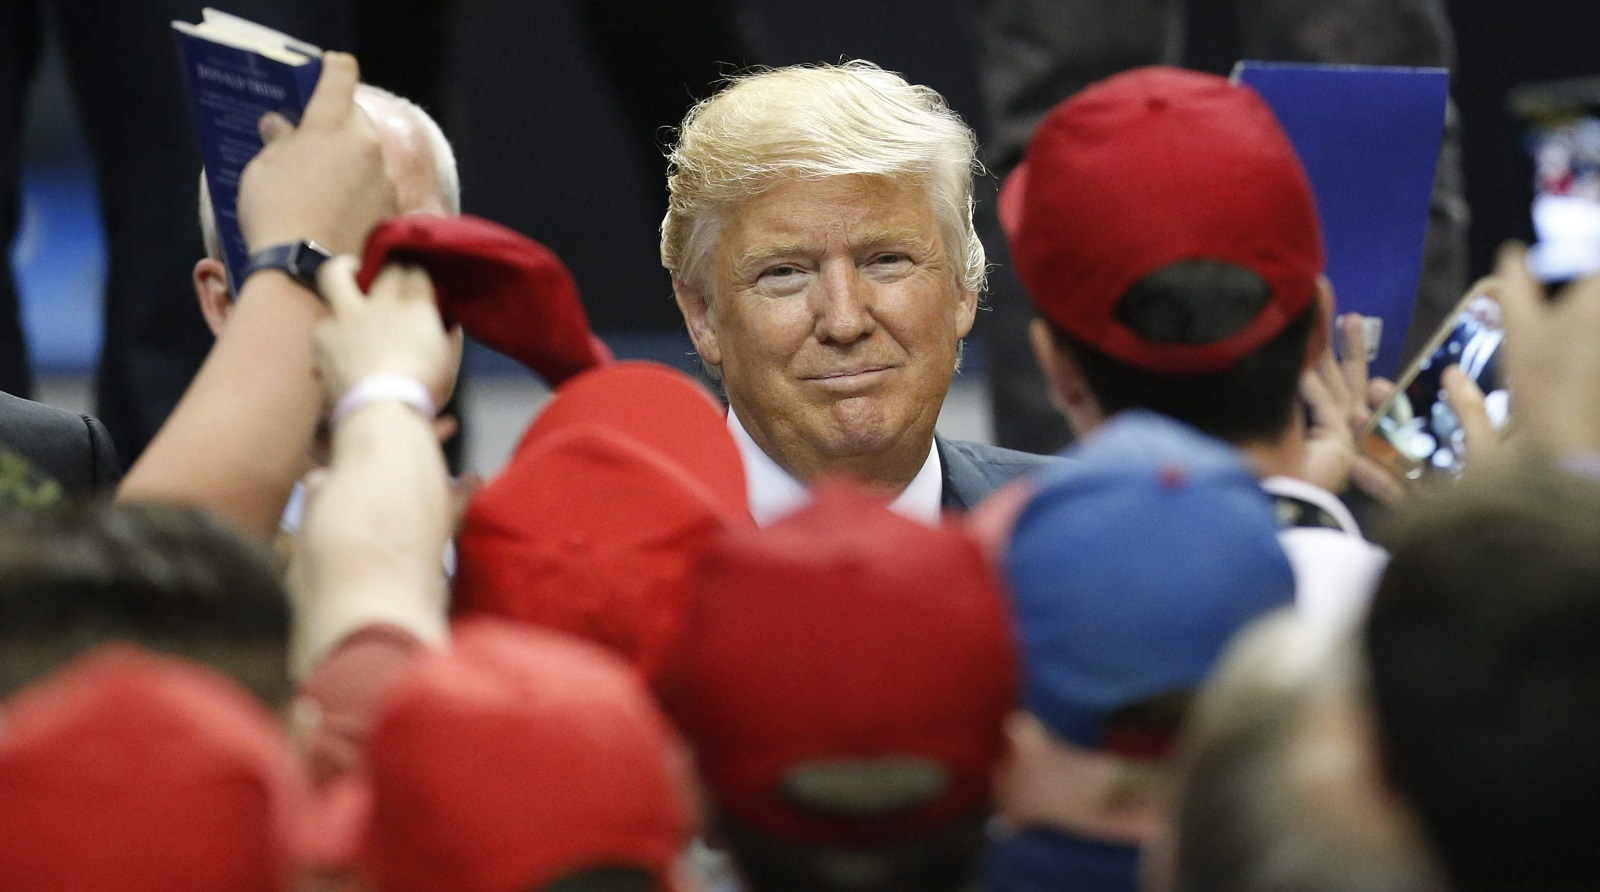 Donald Trump at a 2016 rally in Buffalo. (Derek Gee/News file photo)